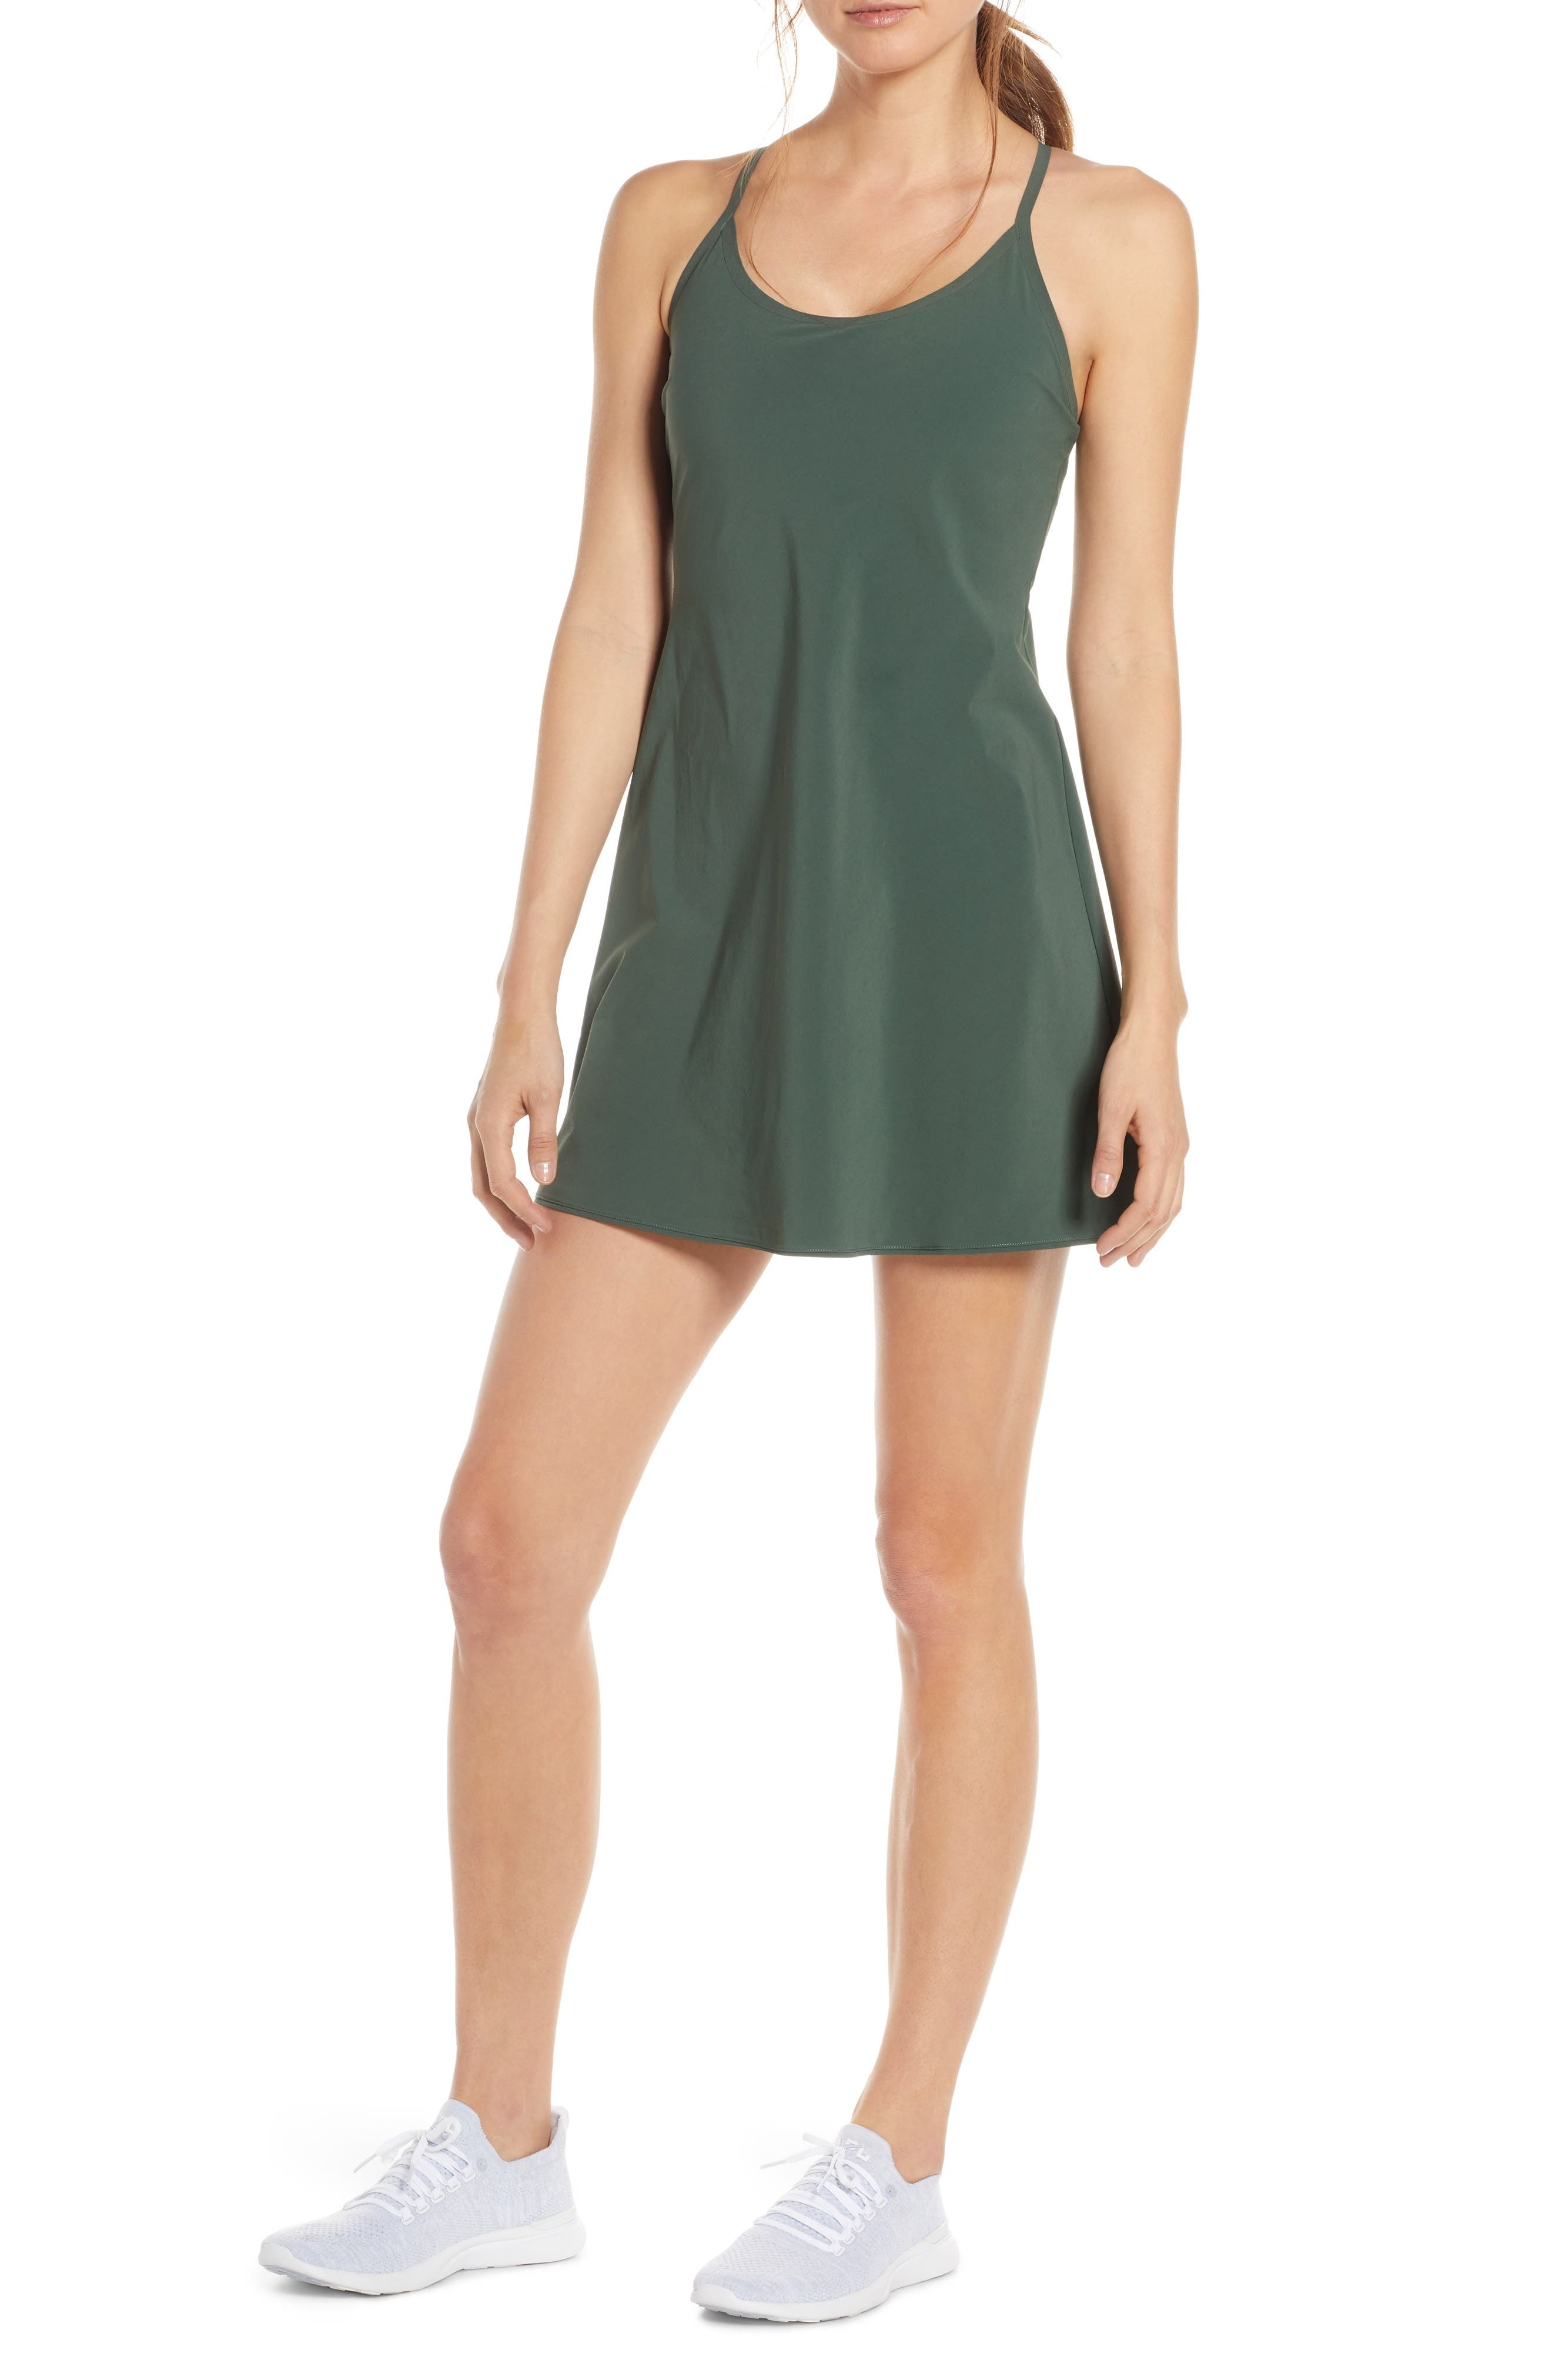 Outdoor Voices The Exercise Dress, Green